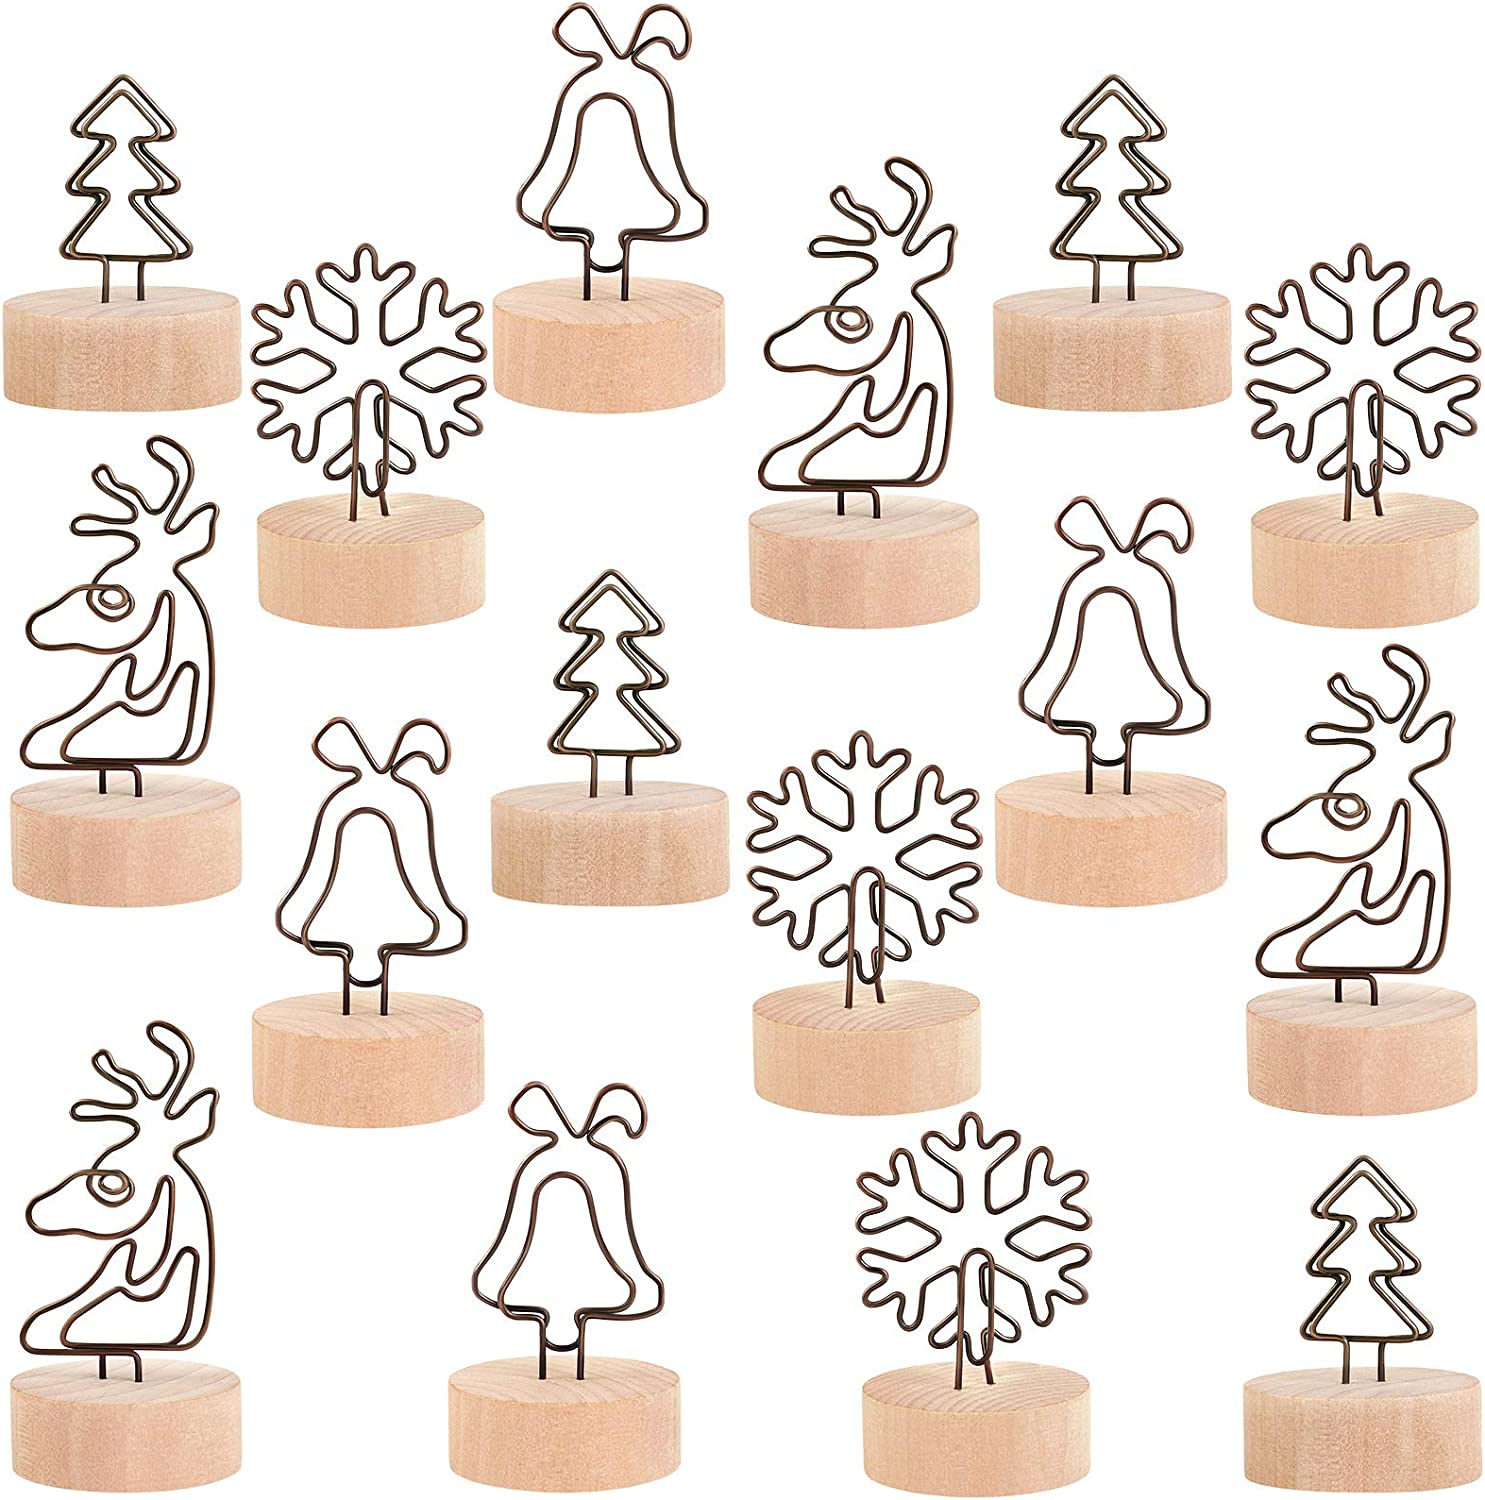 ADXCO 16 Pack Christmas Party Decoration Card Holders Wooden Base Card Holders Rustic Iron Wire Picture Picks Clip Holder 4 Shapes Picture Memo Note Photo Clip for Christmas Table Decorations: Home & Kitchen